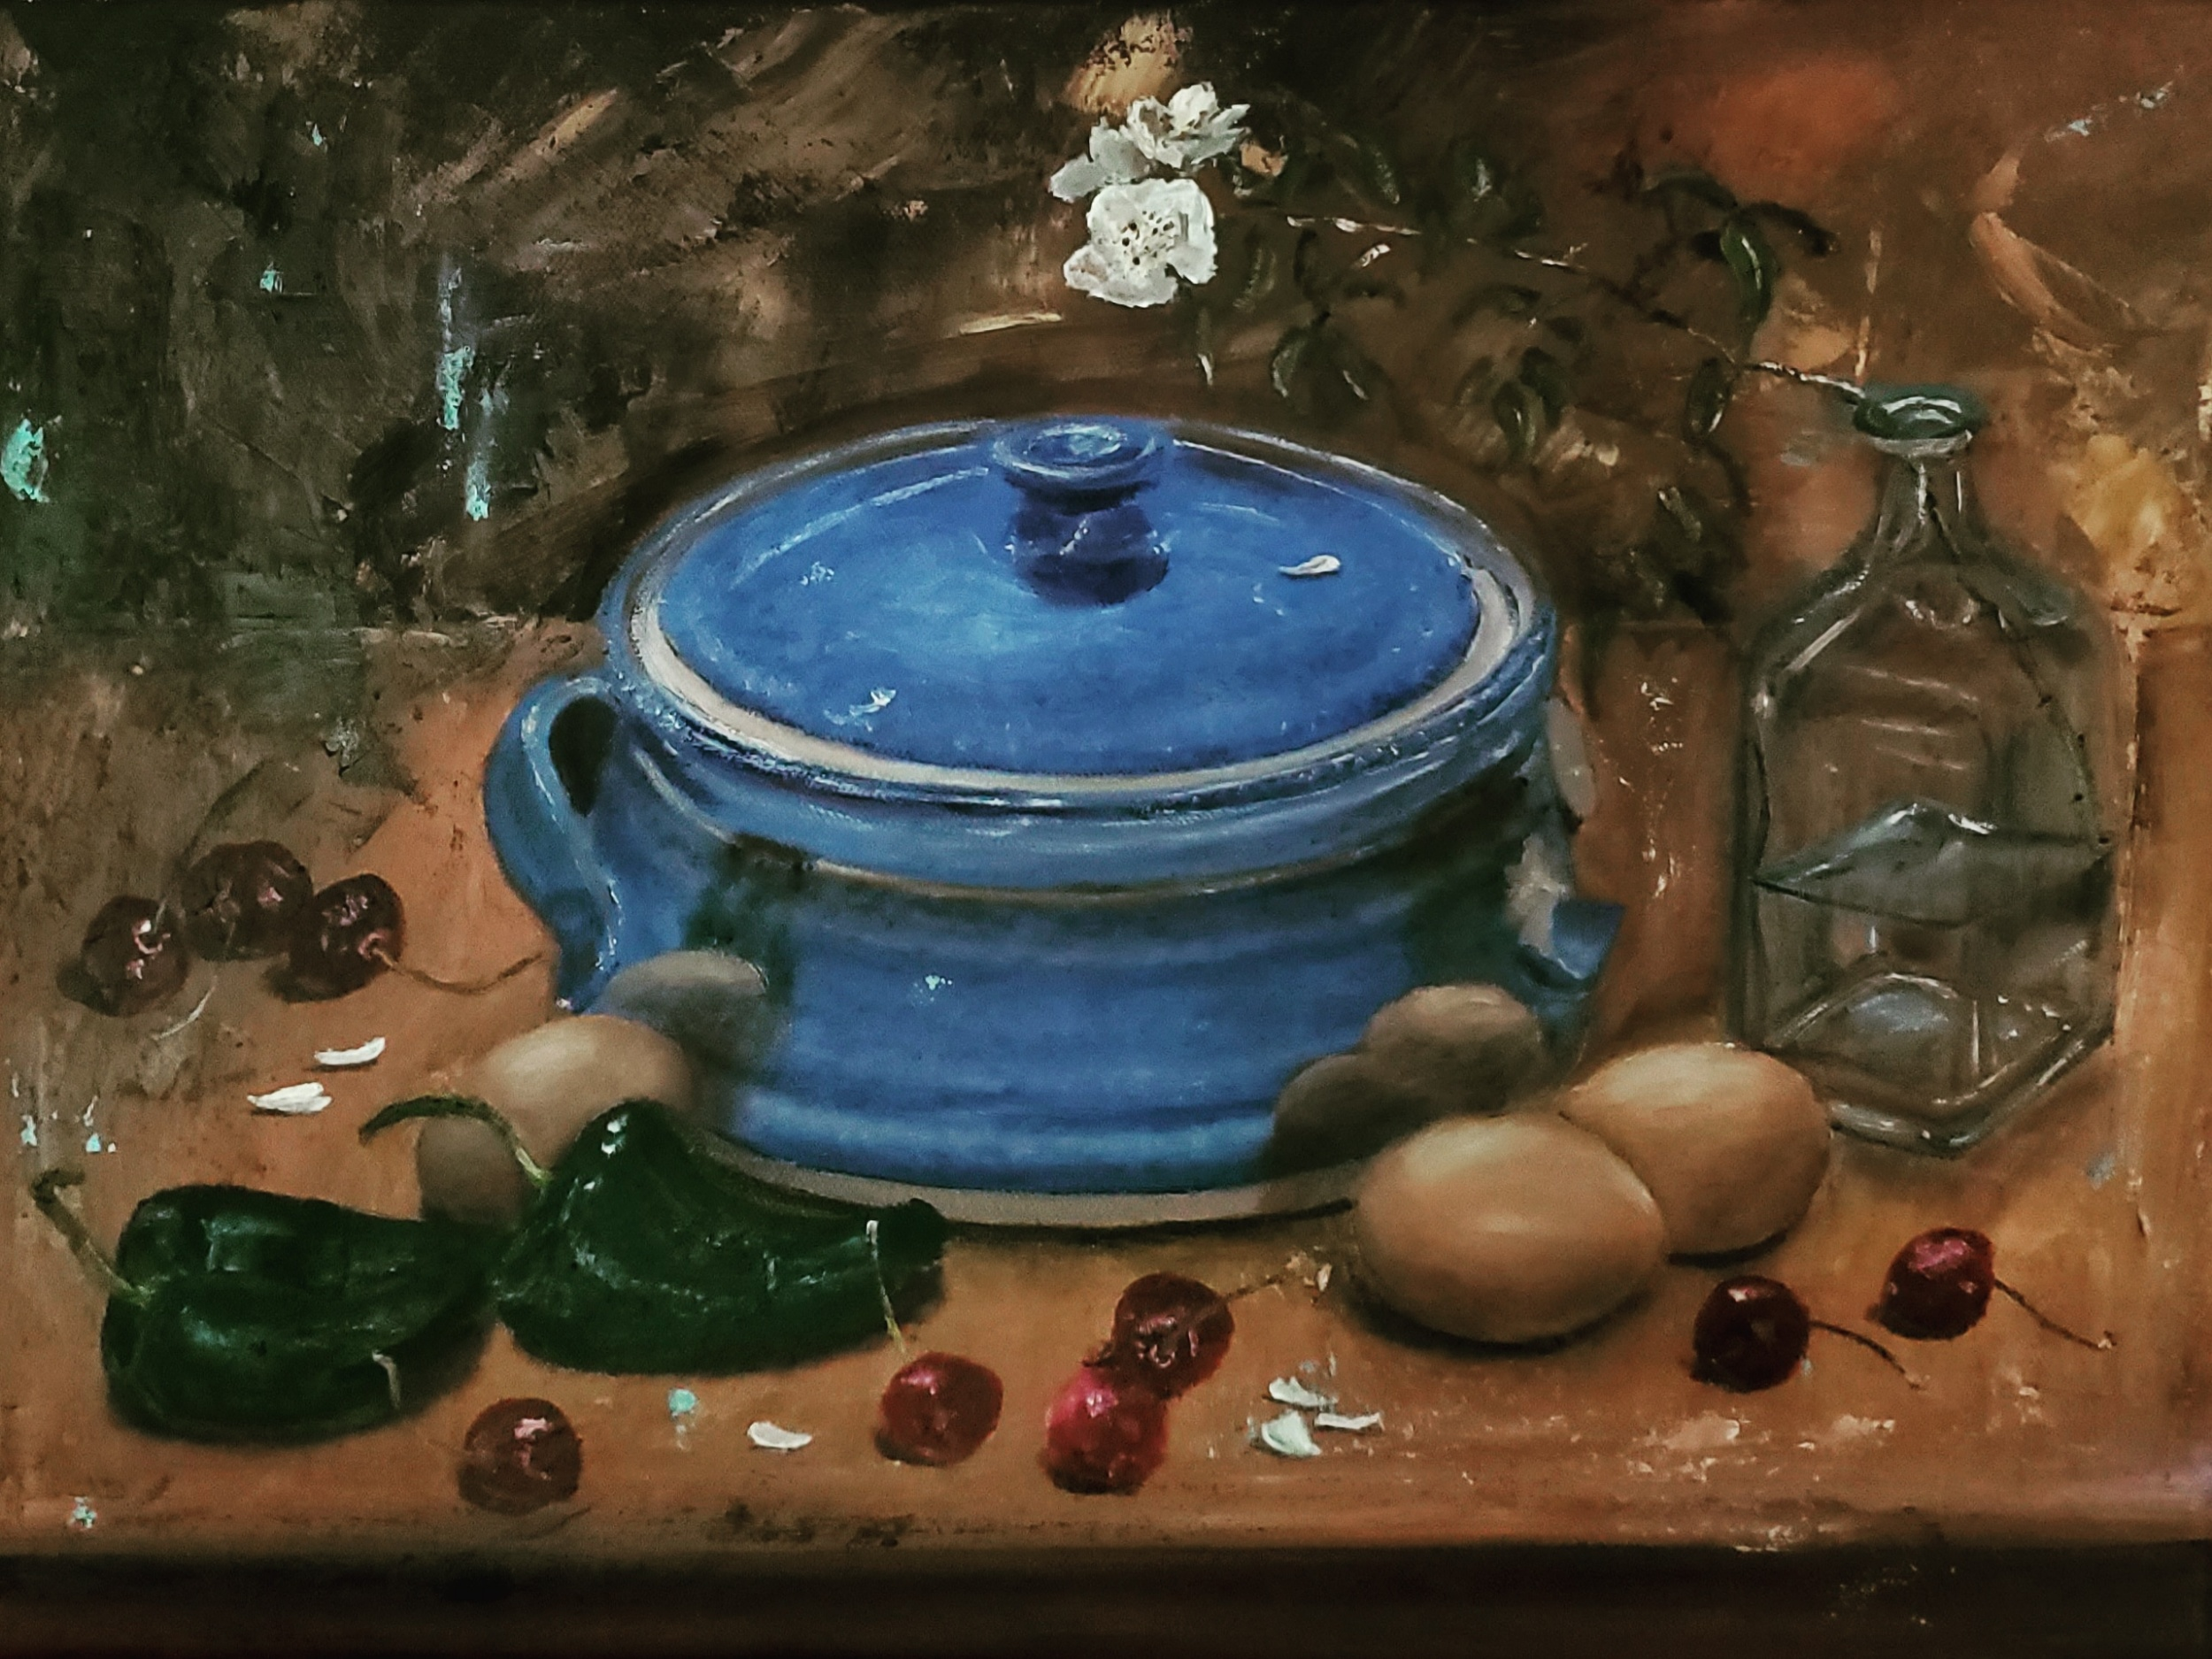 Stillife with Blue Casserole; oil on canvas; 2019